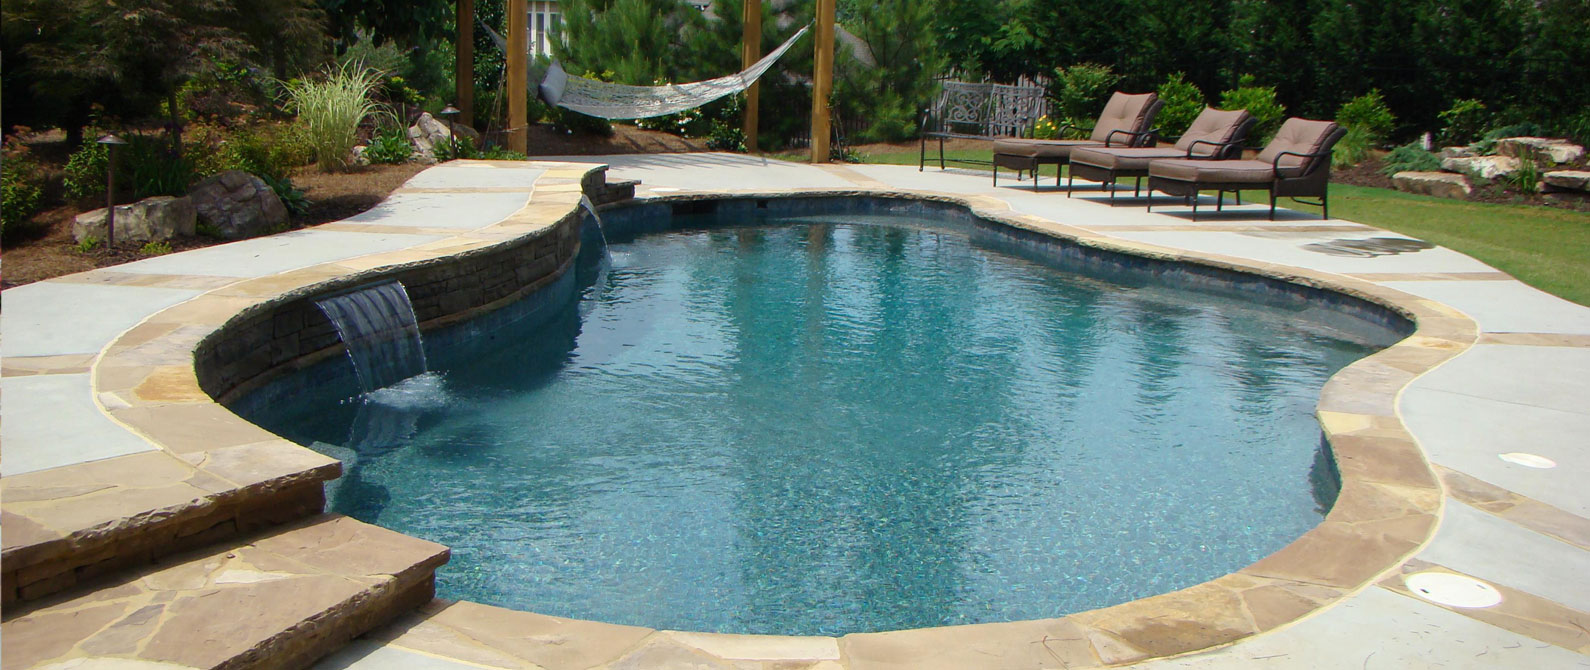 High quality pools and spas atlanta outdoor designs inc for Quality pool design